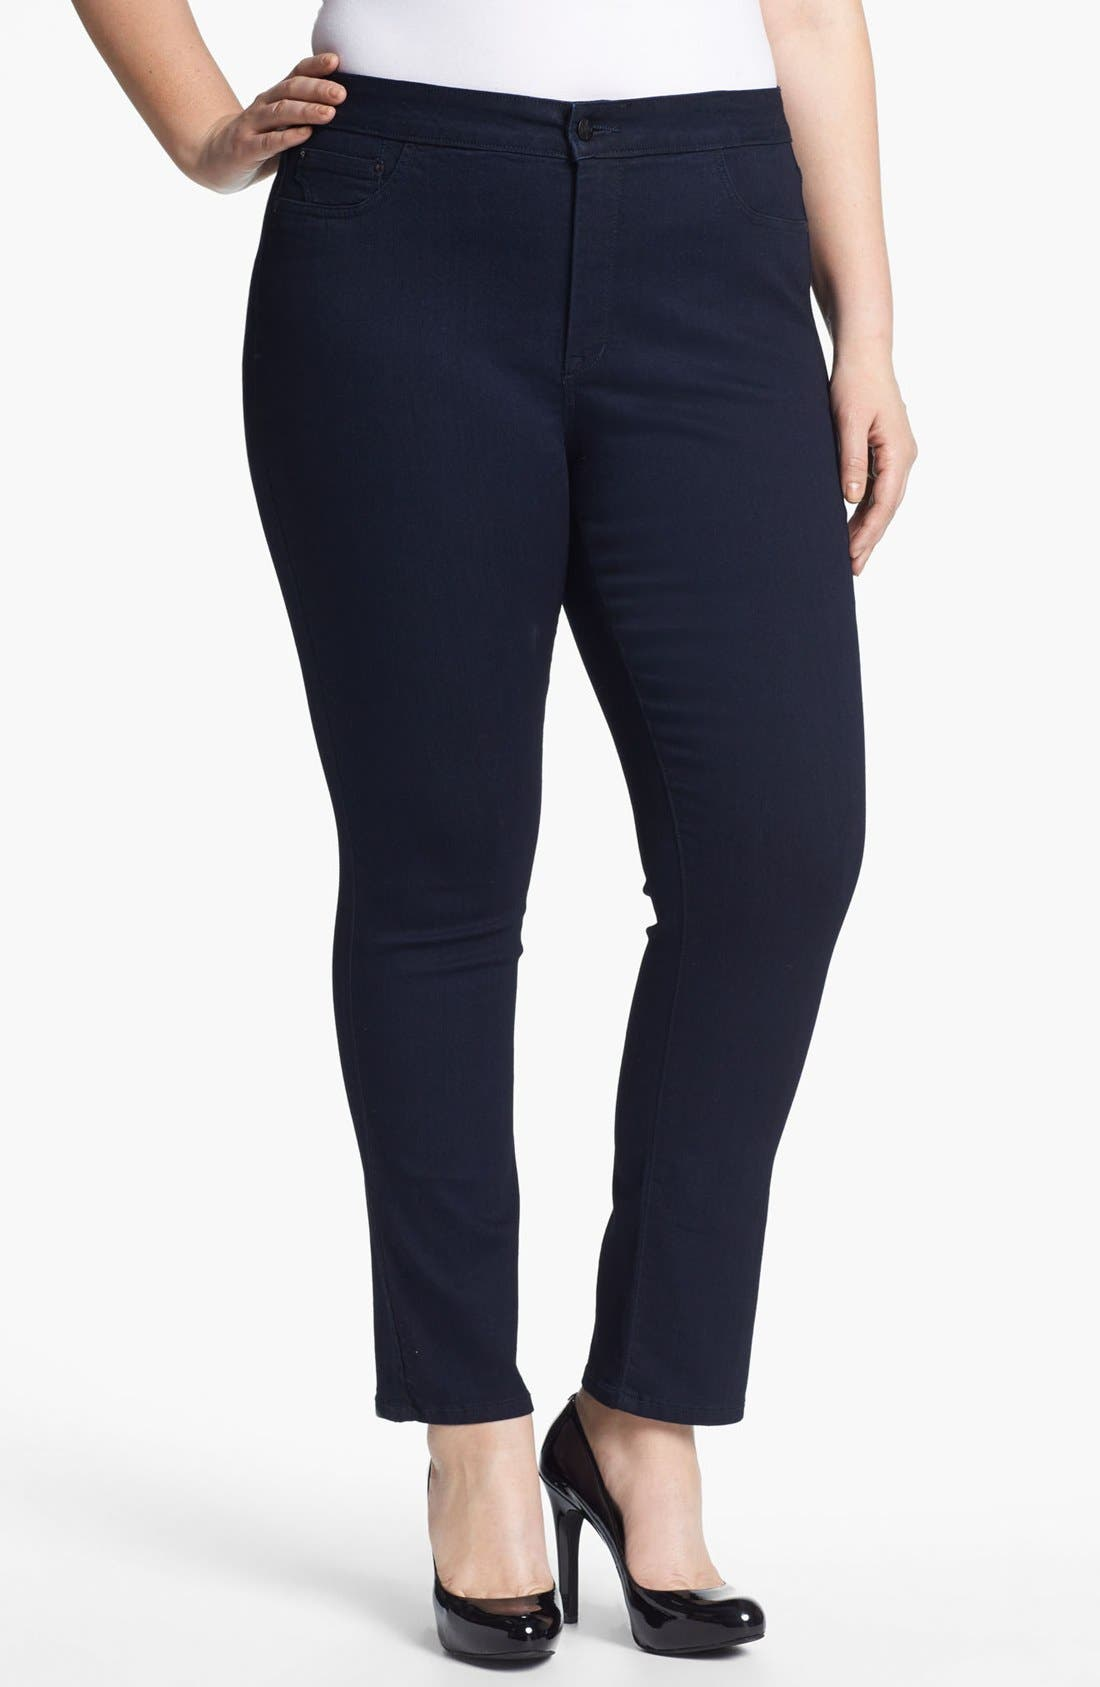 Main Image - NYDJ 'Jaclyn' Stretch Skinny Jeans (Resin) (Plus Size)